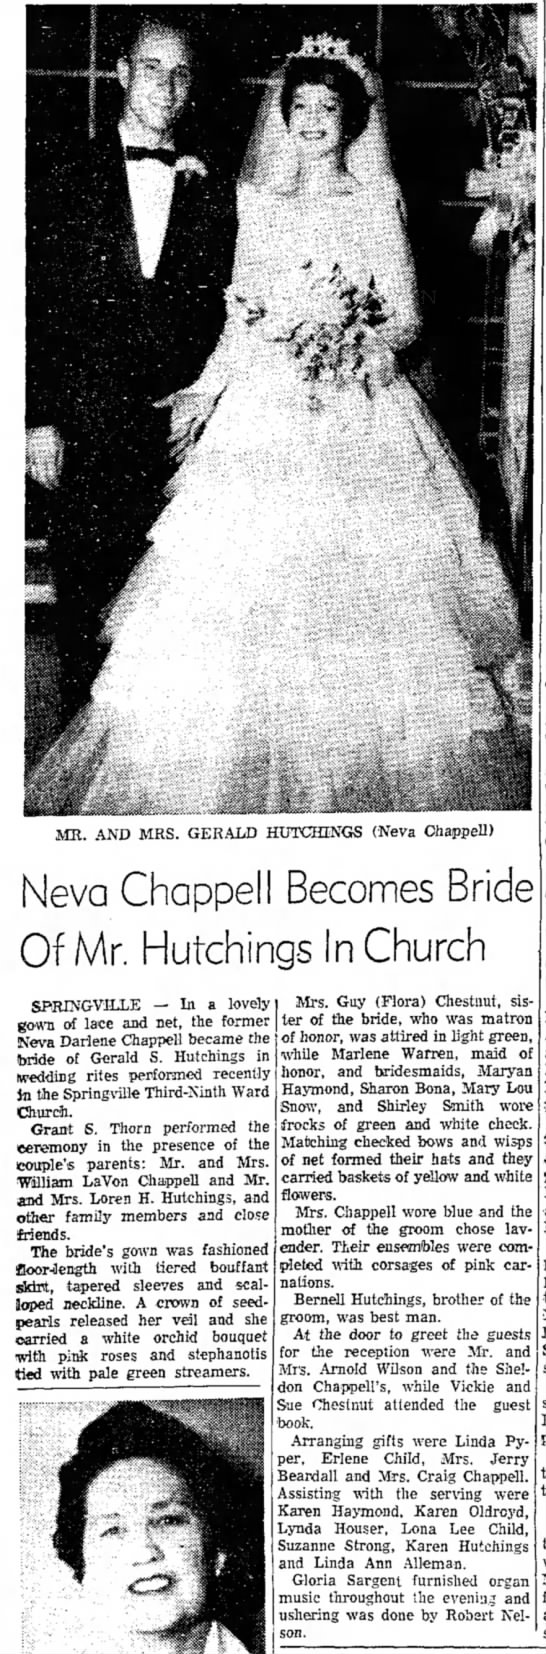 Neva Chappell Gerald S Hutchings wedding published 19 May 1960 - MR. AND MRS. GERAI/D HUTOflNGS (Neva Chappell)...